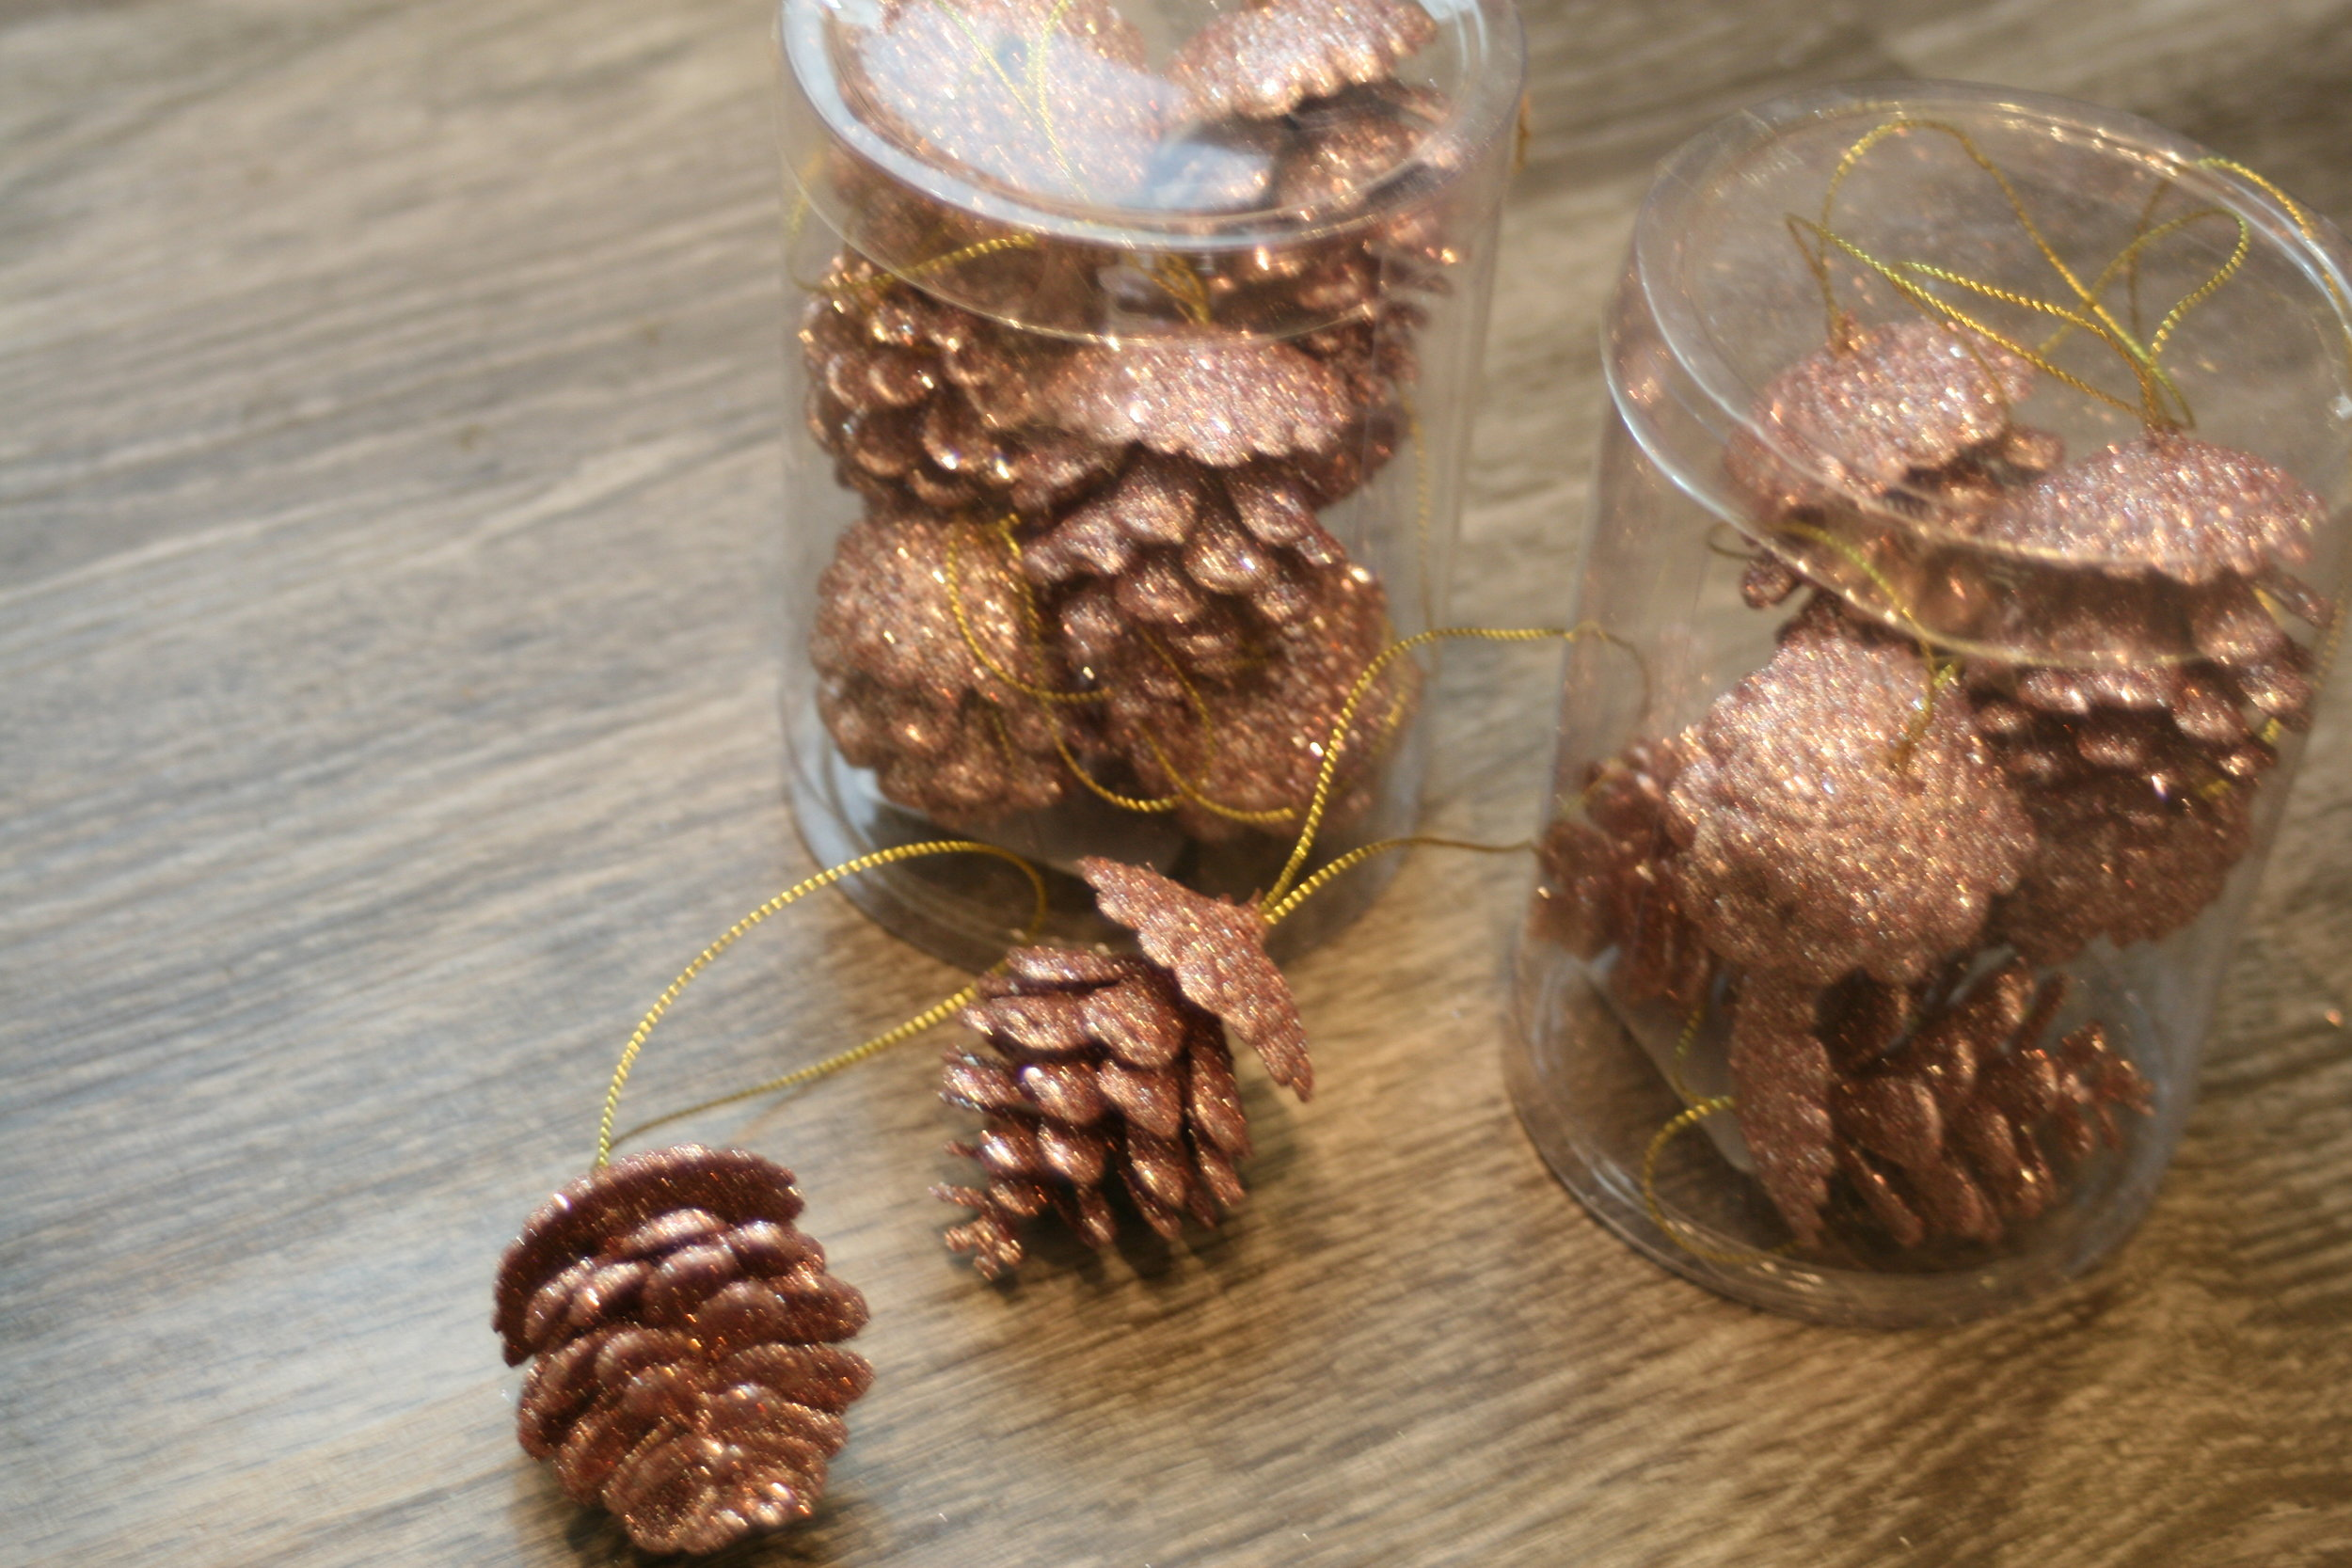 Snagged these blush glitter pine cones at Target! $3 for a tub of 6.